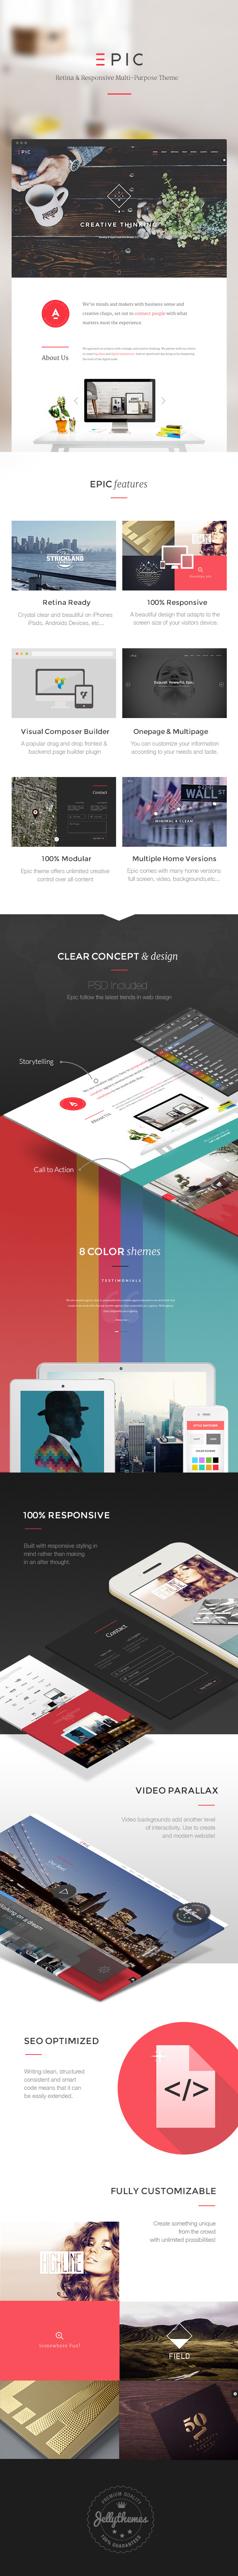 EPIC - Responsive Multi-Purpose Theme - 2